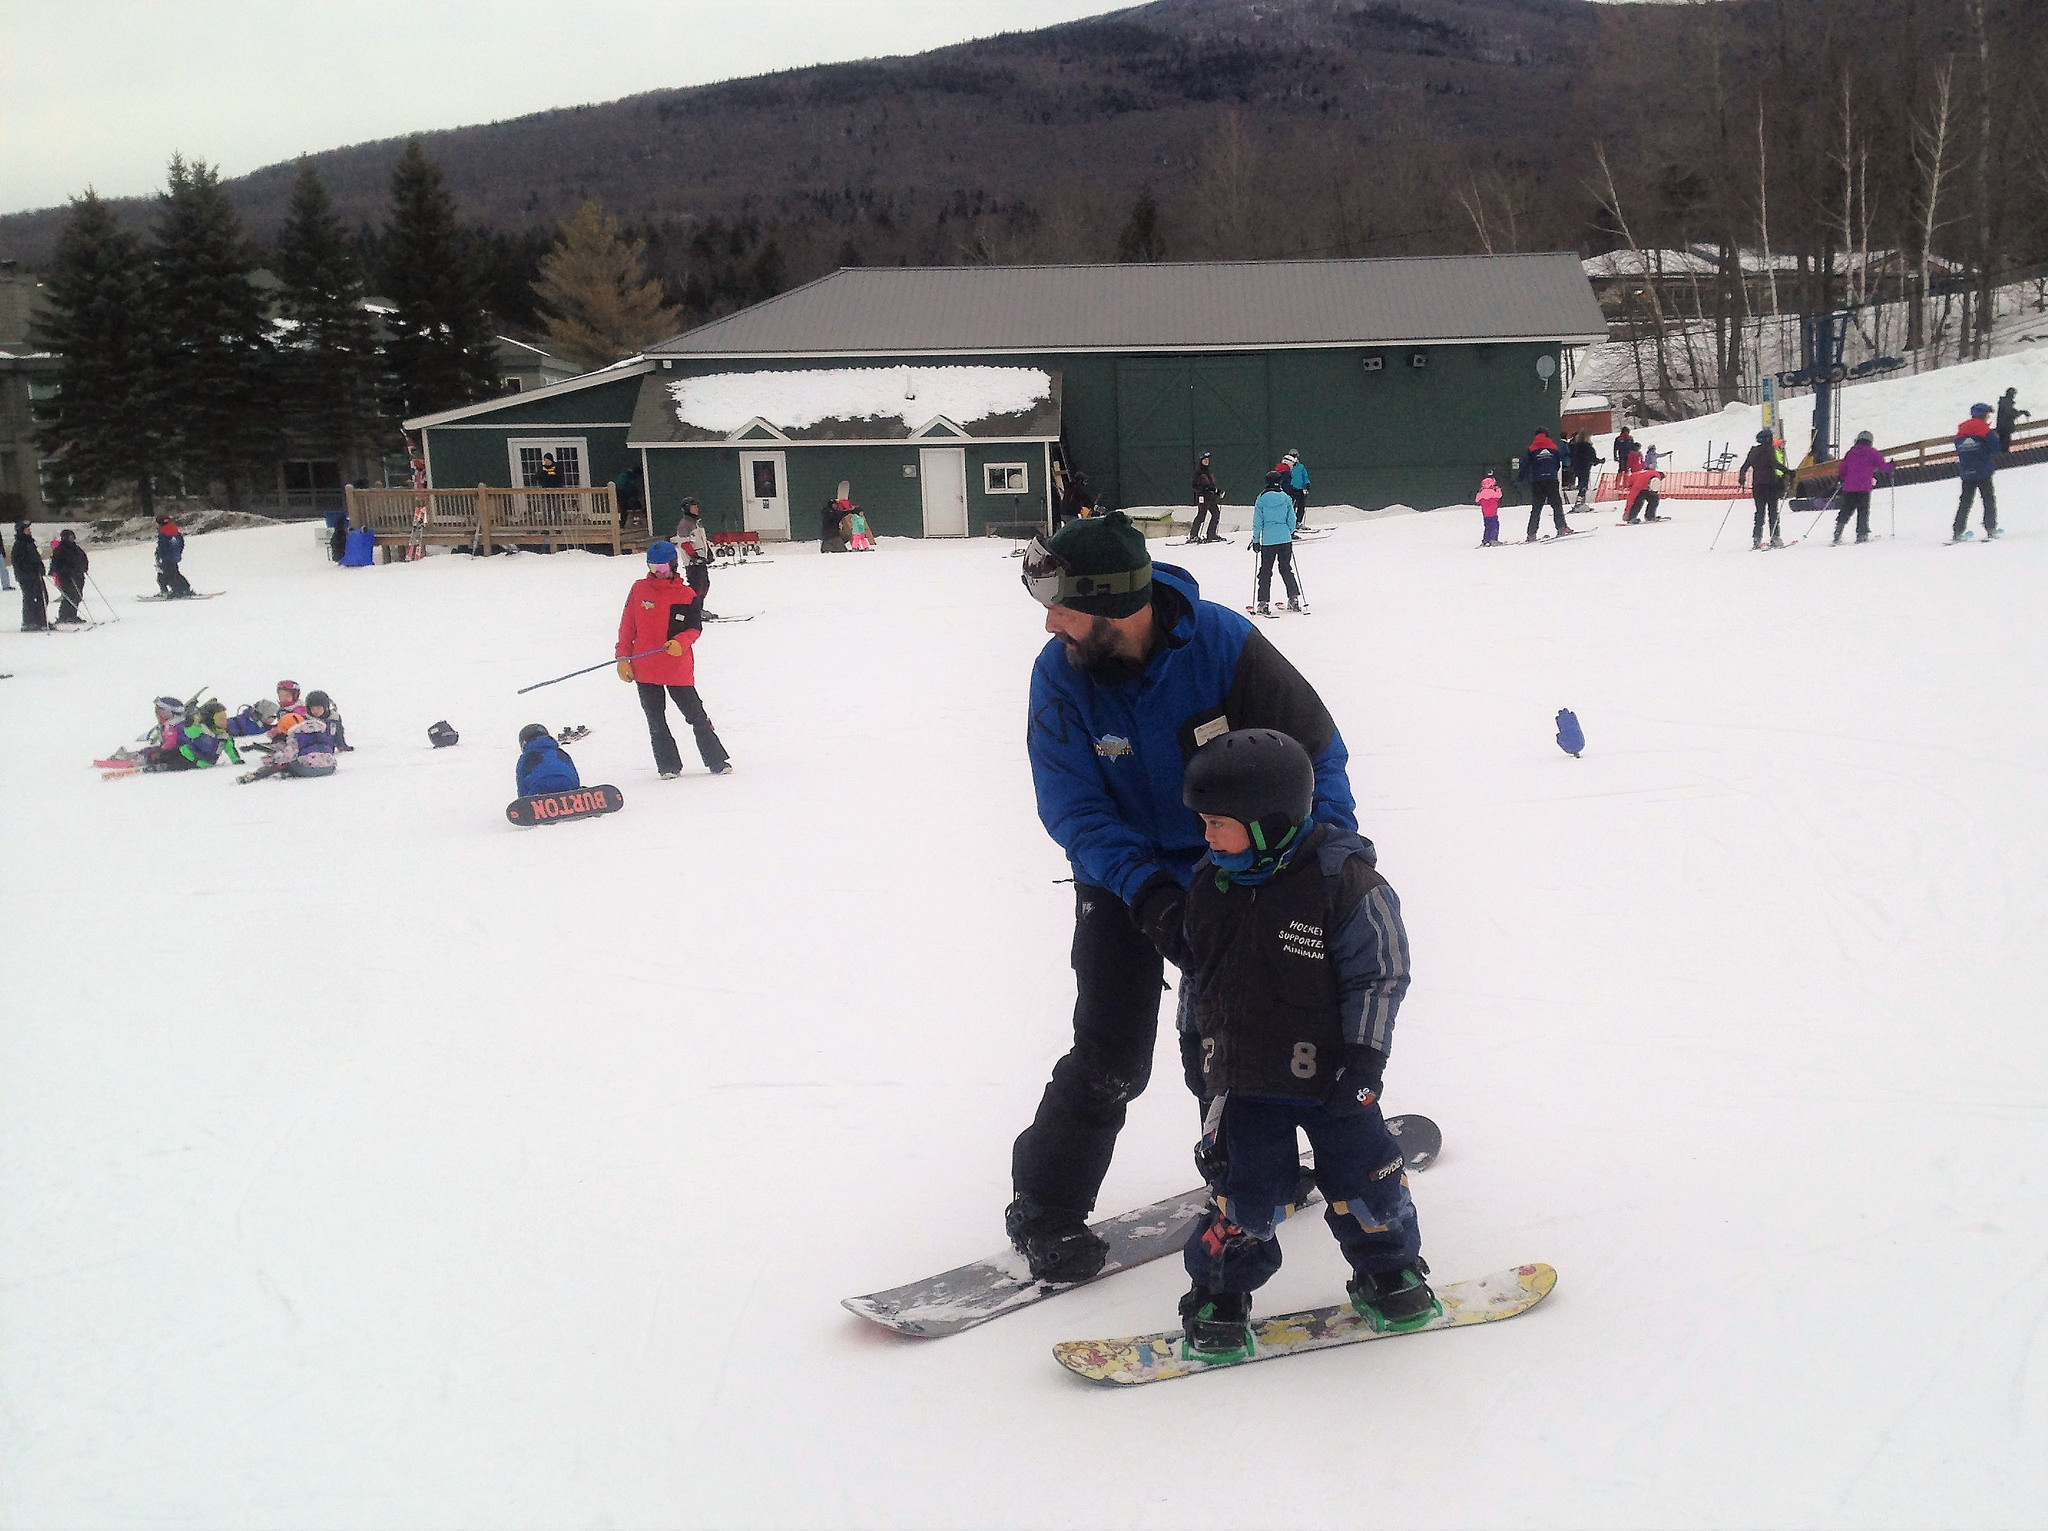 private snowboarding instructor, vermont ski resorts